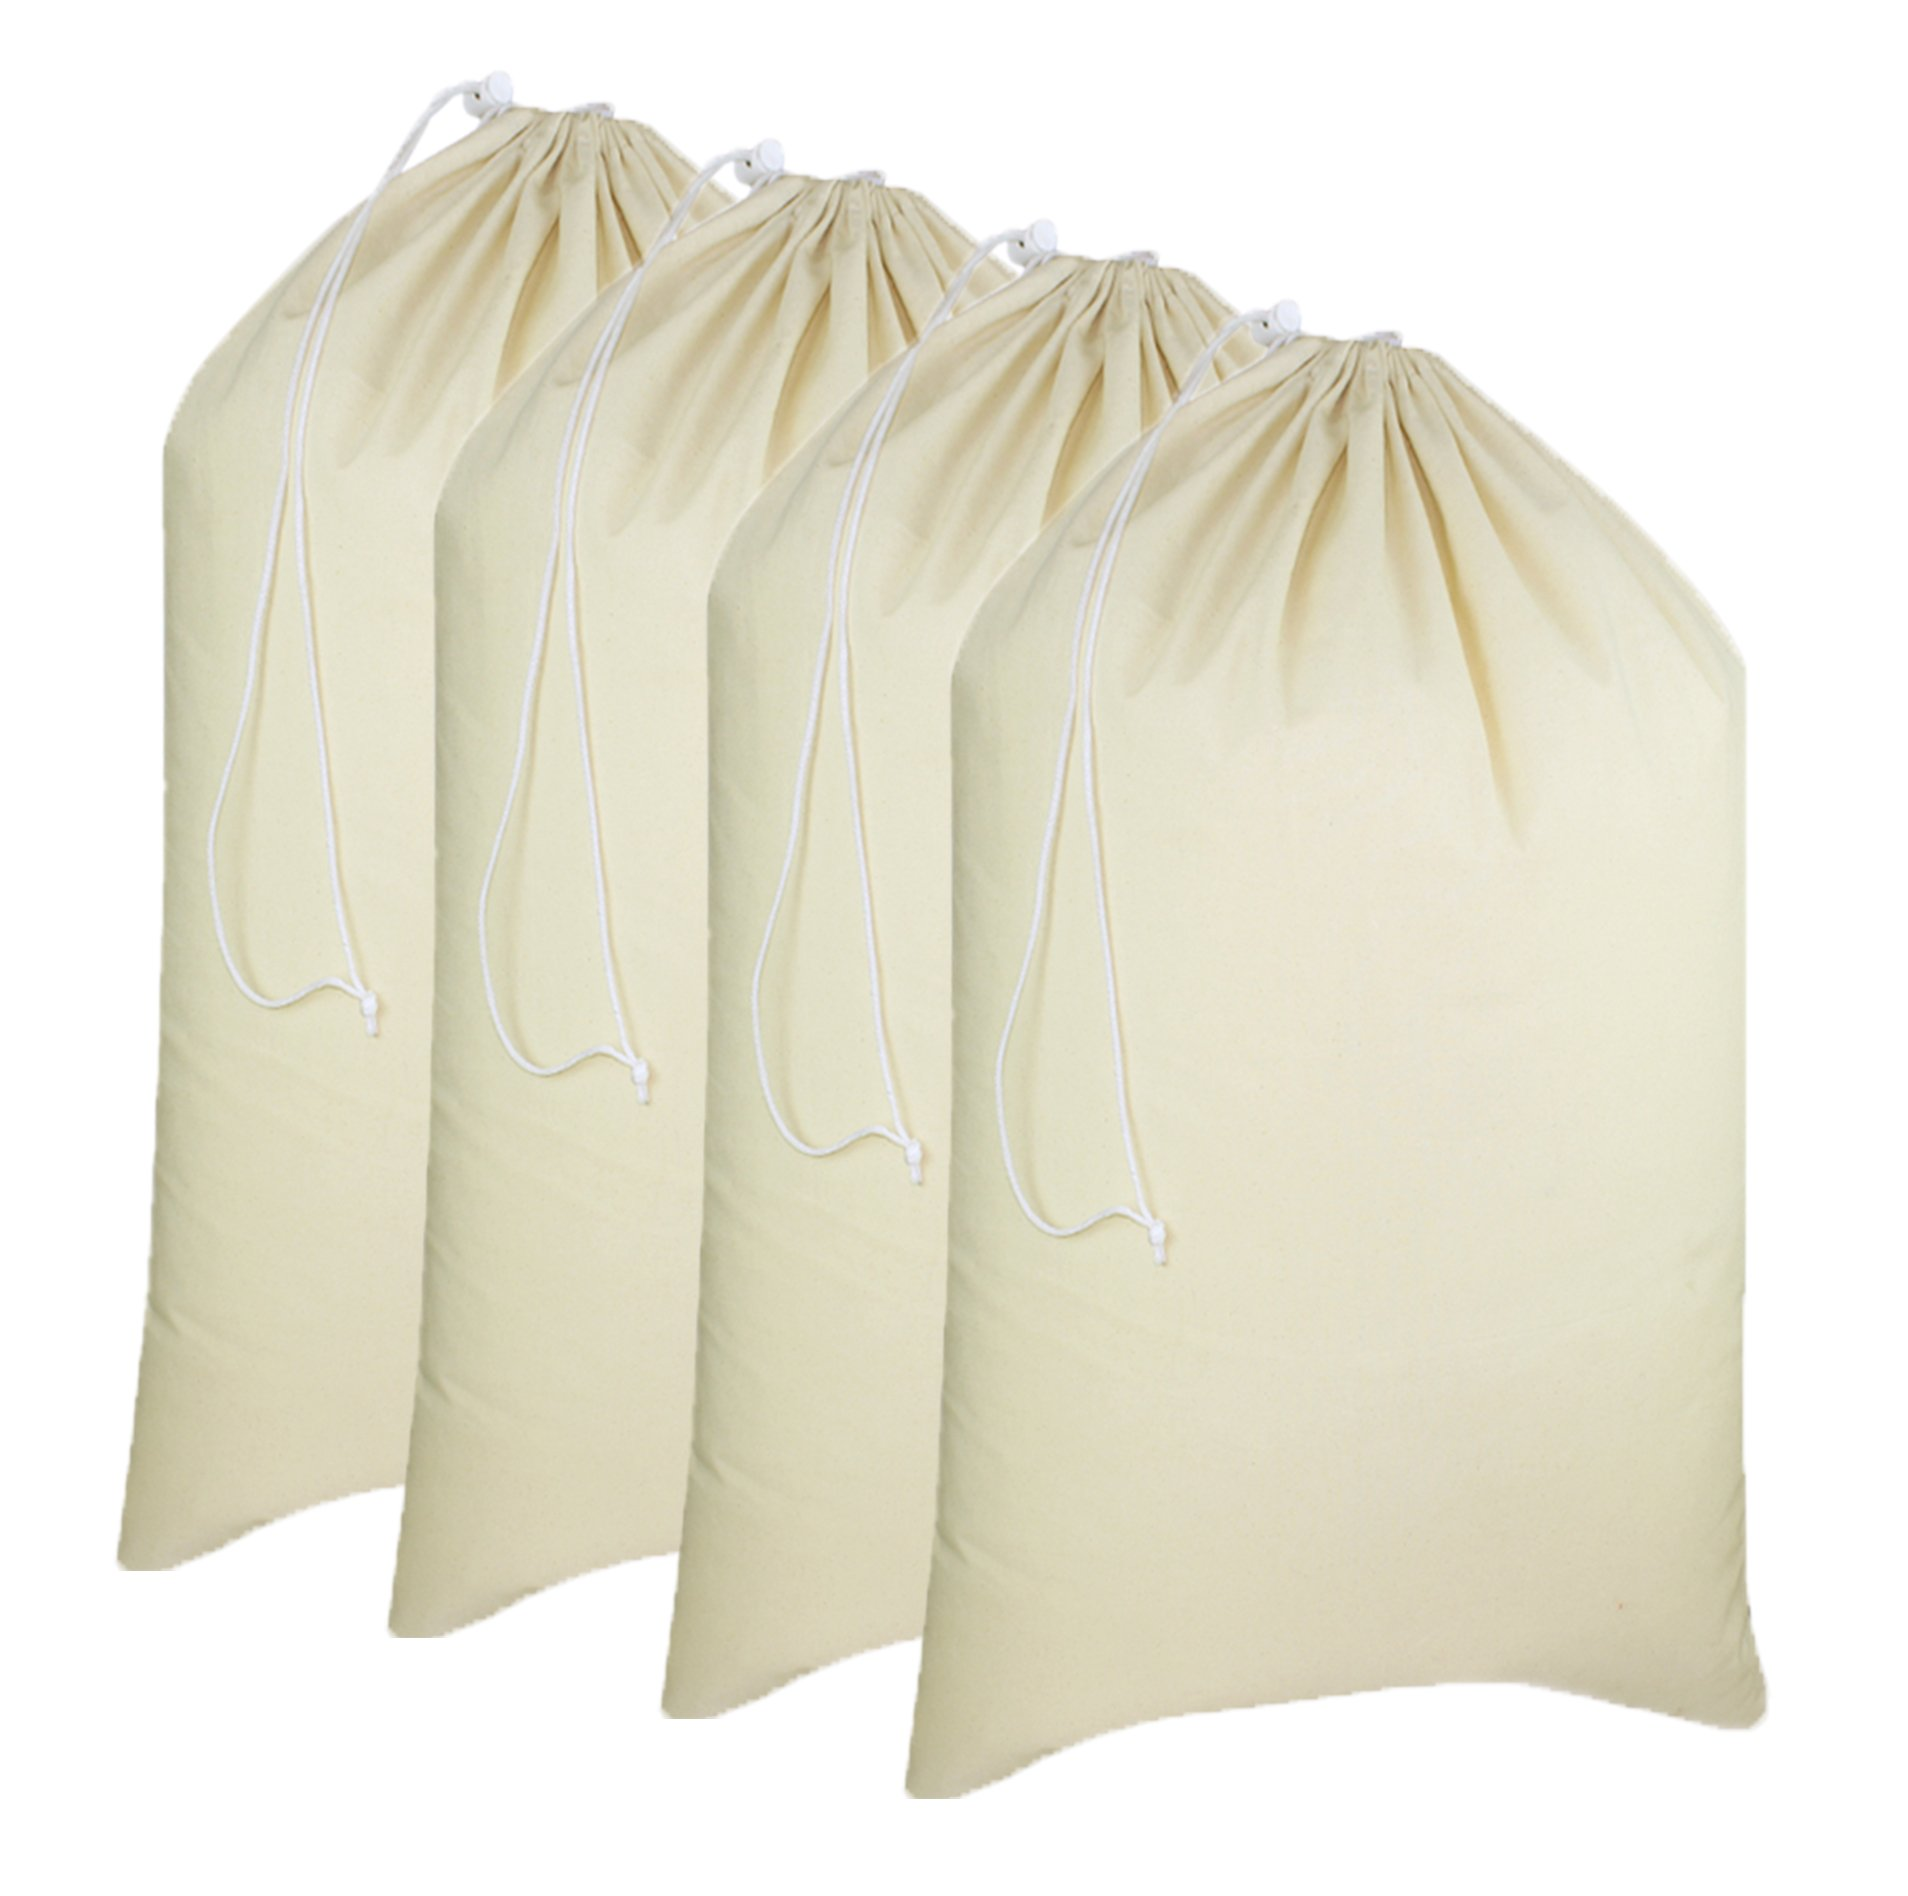 Cotton Craft - 4 Pack Extra Large 100% Cotton Canvas Heavy Duty Laundry Bags - Natural Cotton - 28x36 - Versatile - Multi Use - Santa Sack